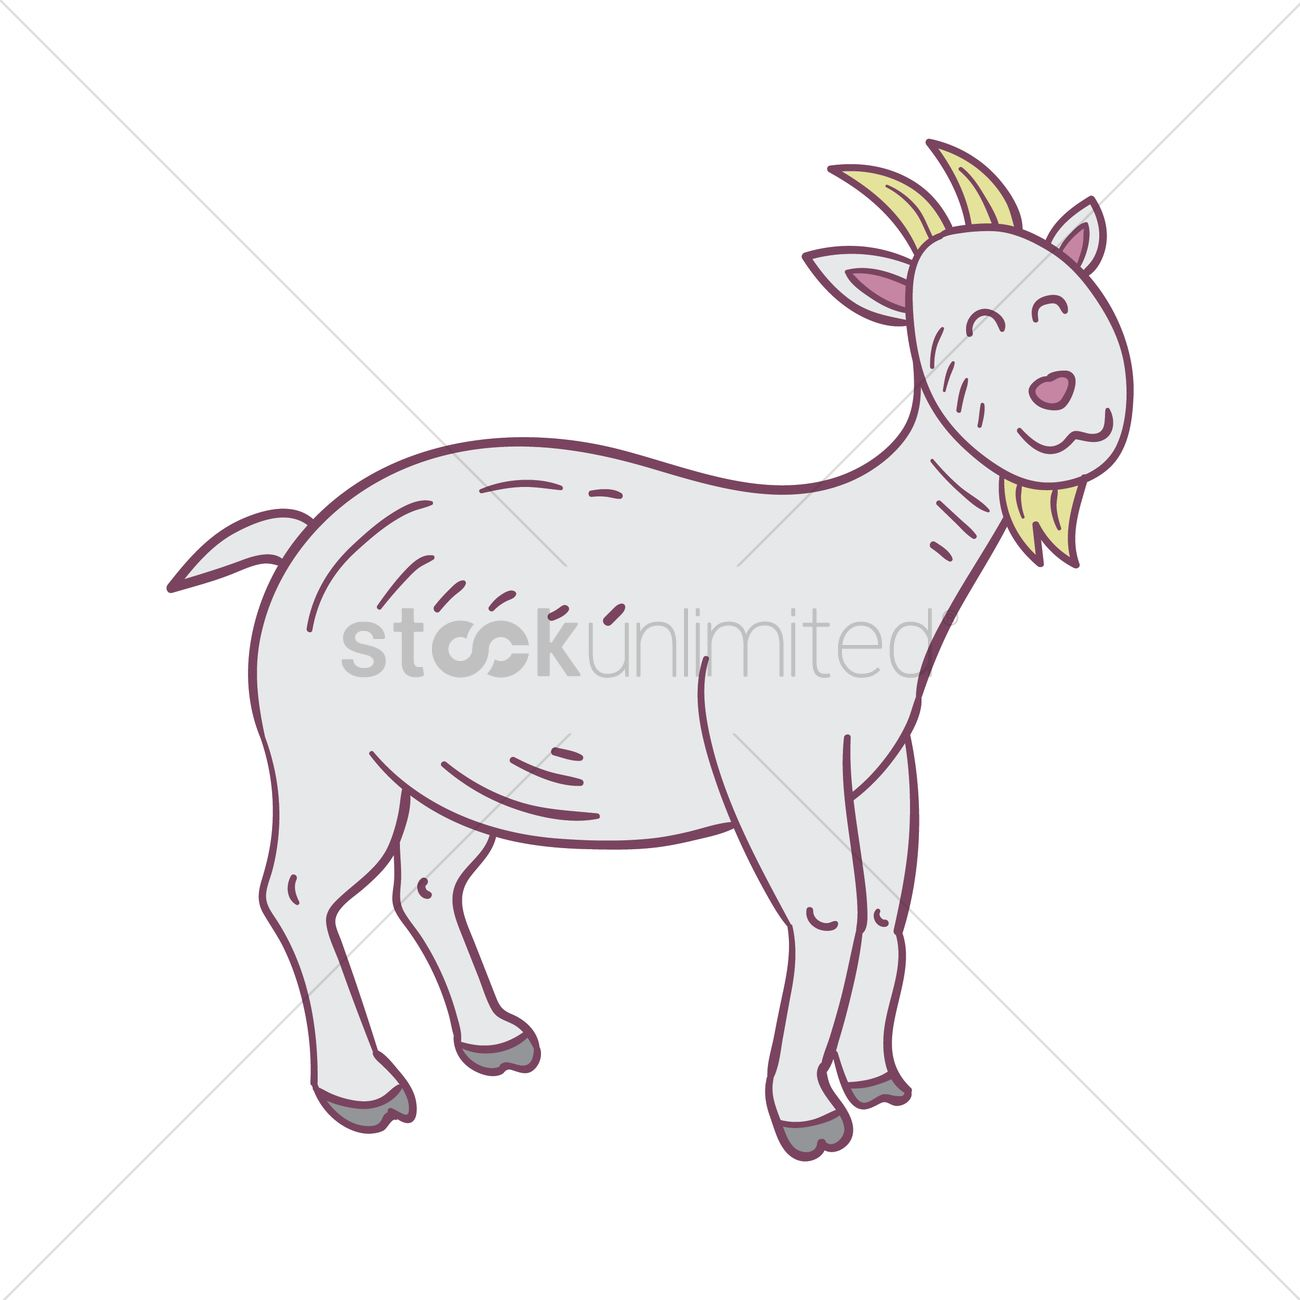 Happy goat Vector Image - 2028964 | StockUnlimited for happy goat drawing  183qdu